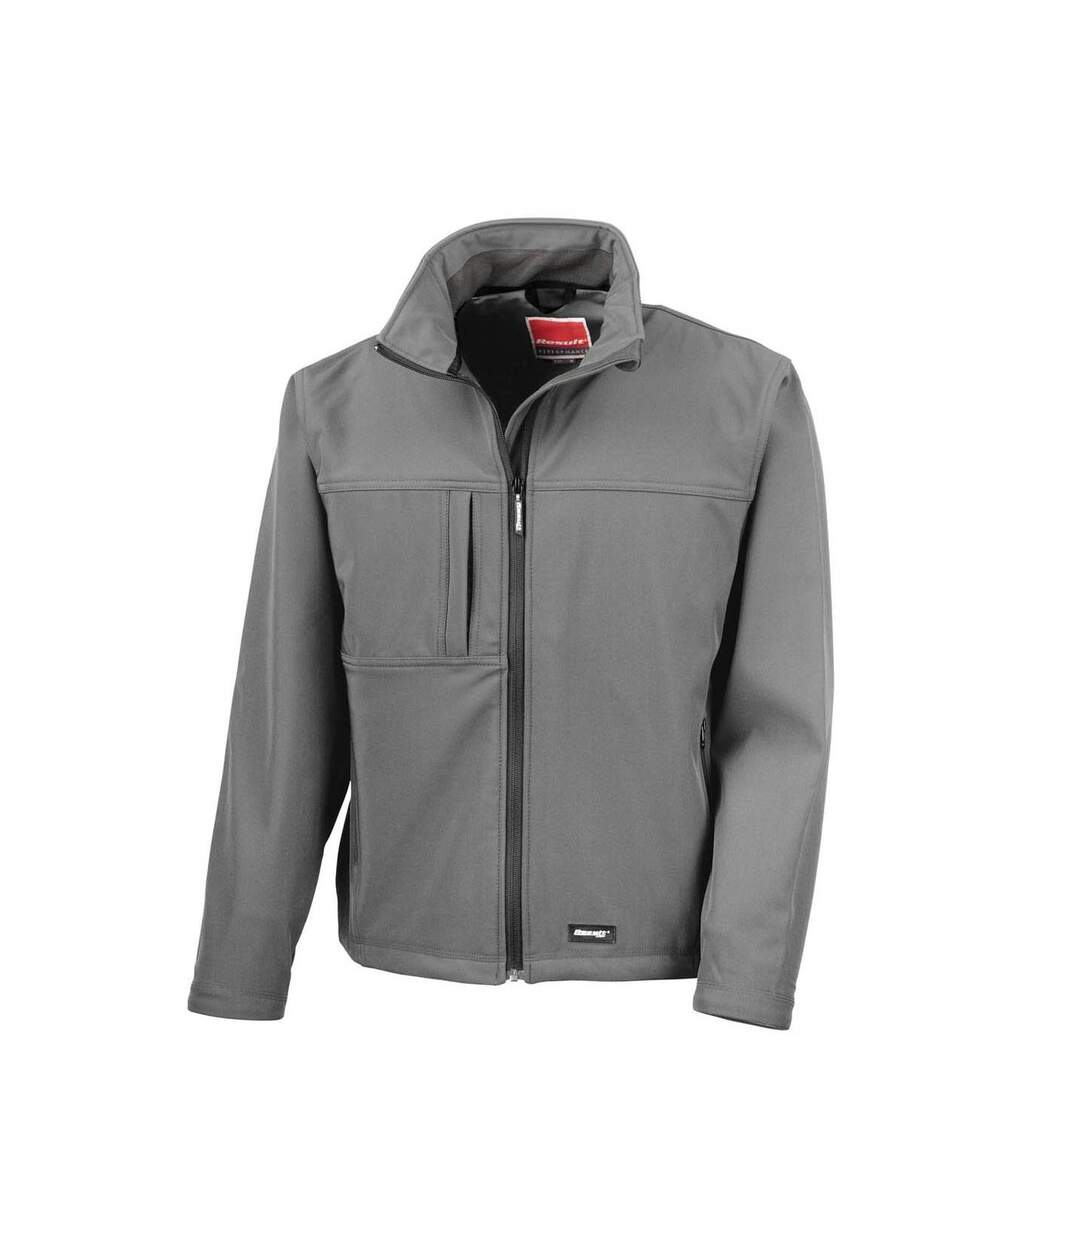 Result Mens Classic Softshell Breathable Jacket (Grey) - UTBC857